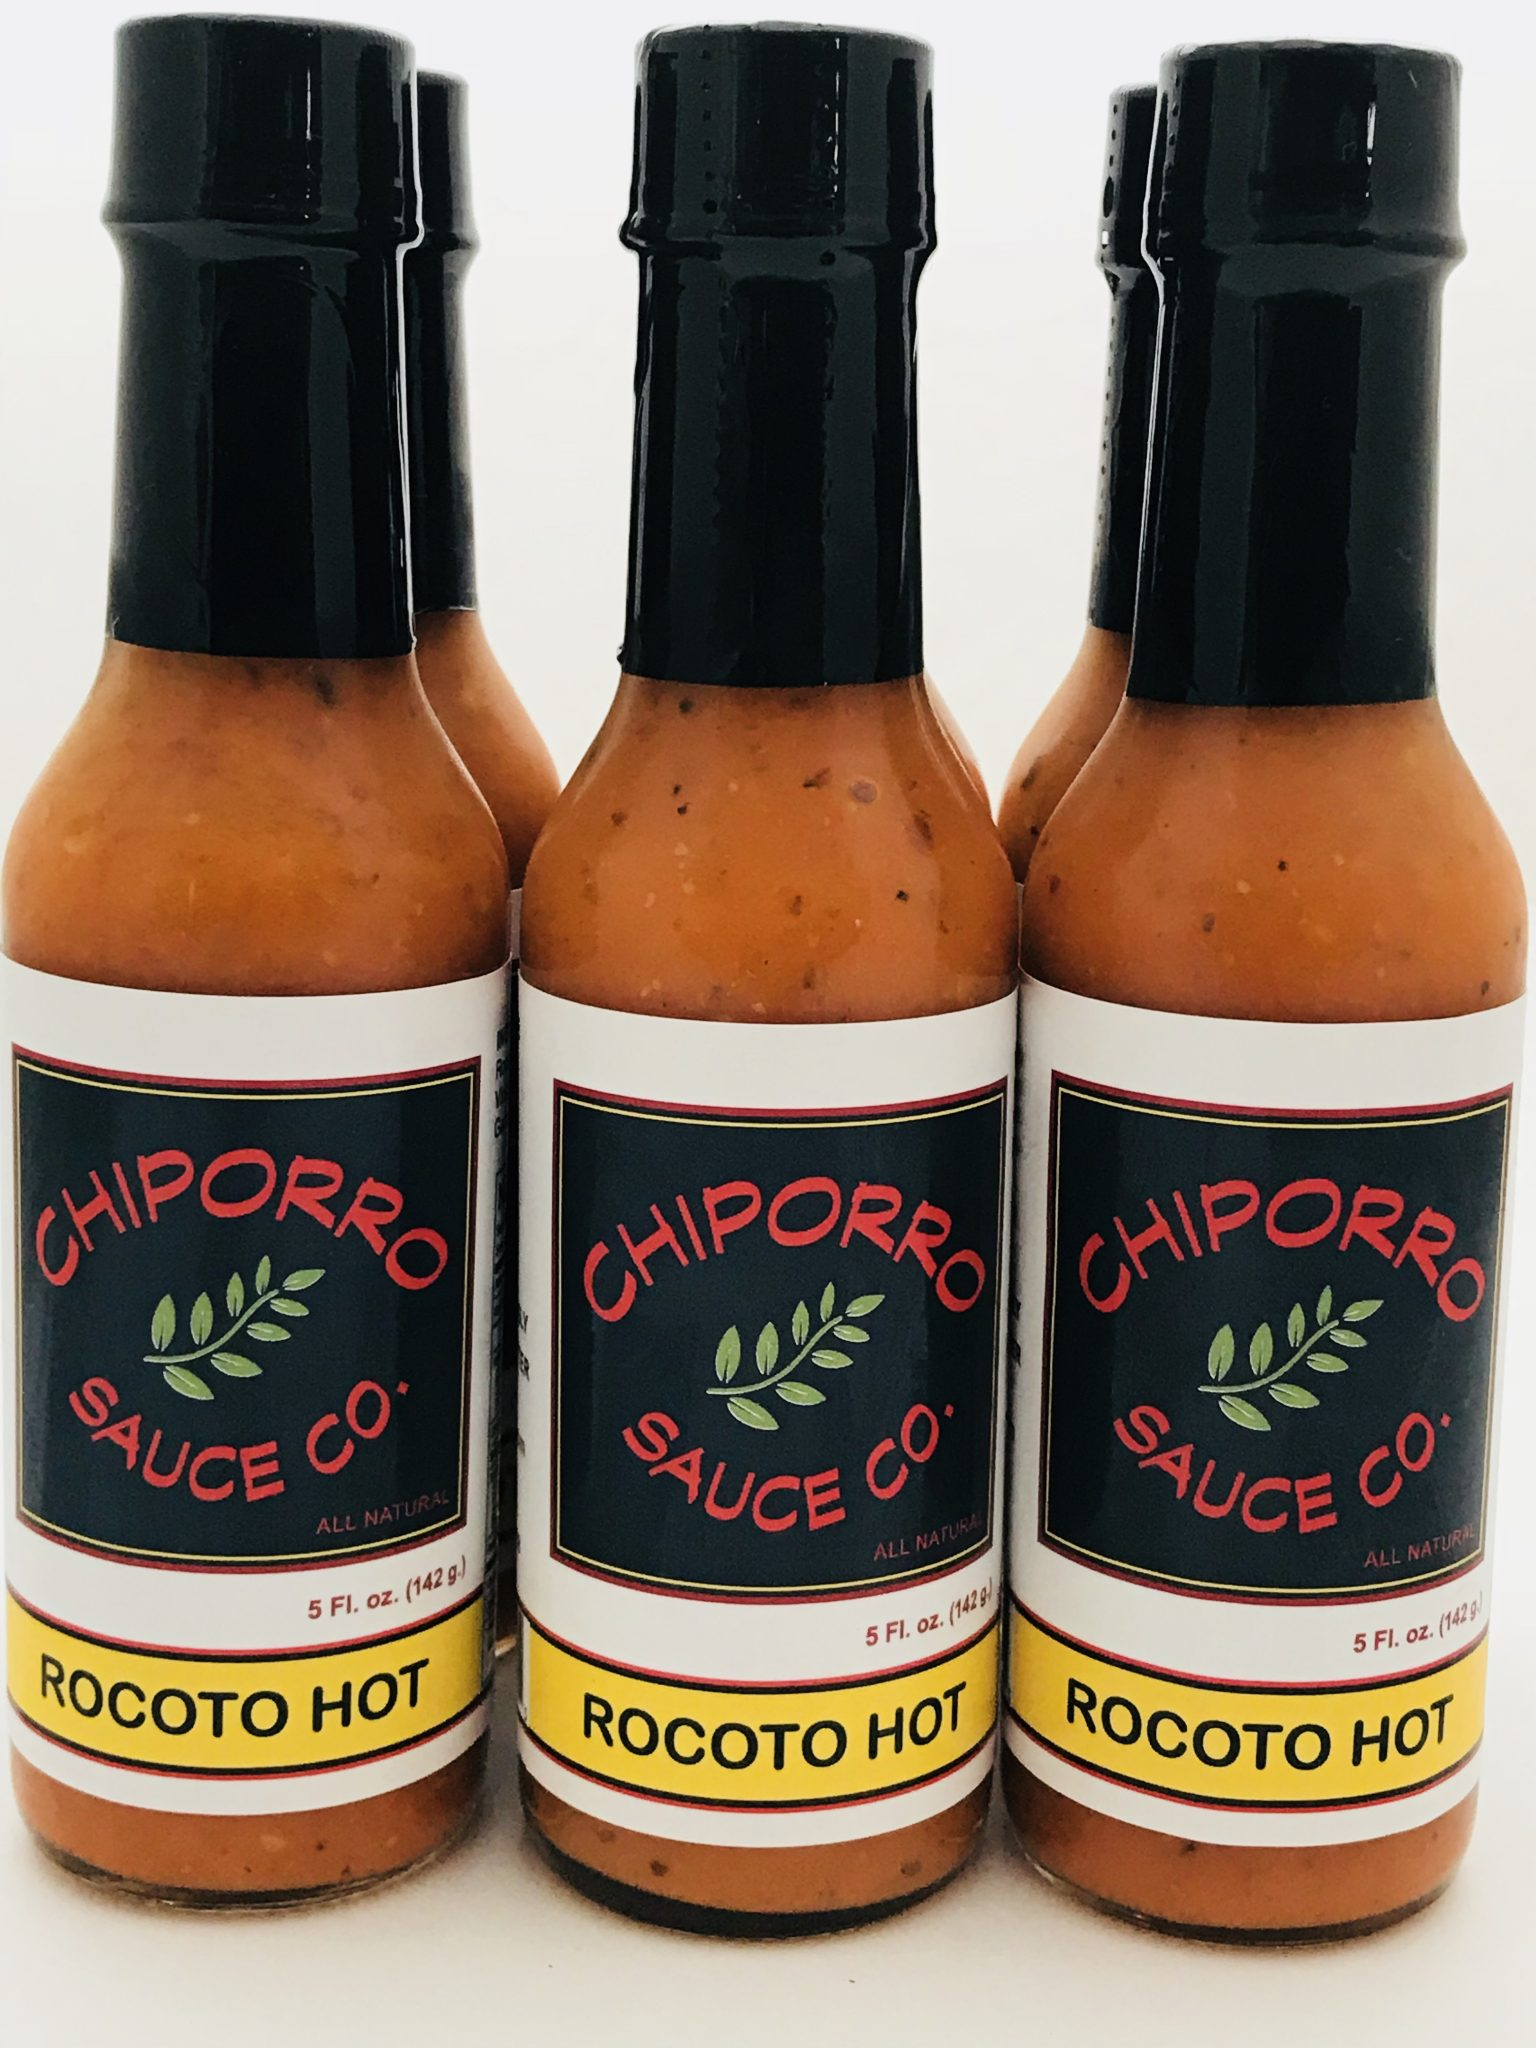 Bottles of Rocoto Hot Sauce